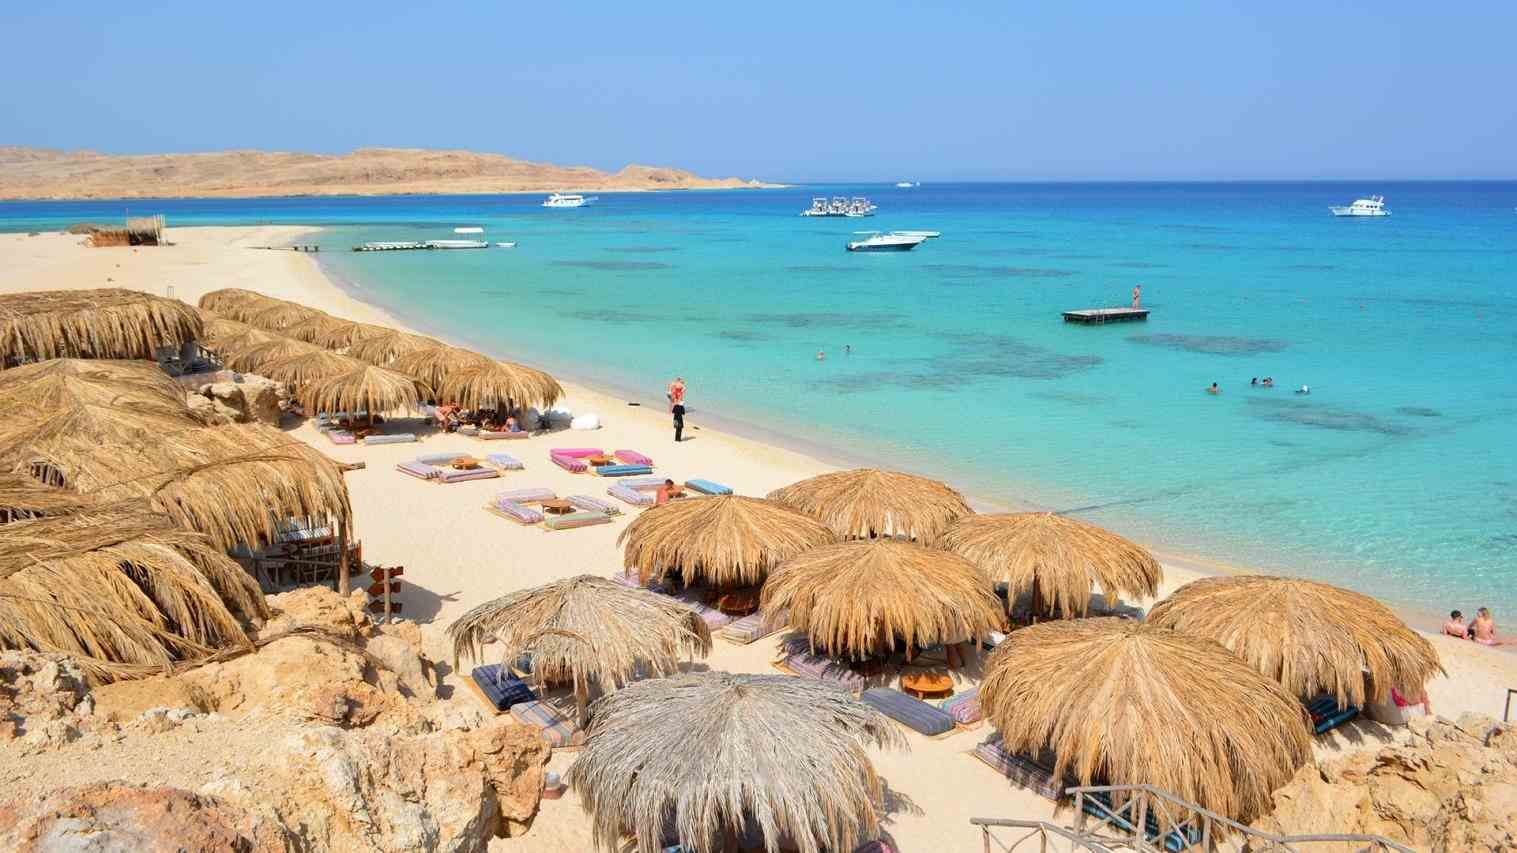 Of Anic Spa And Aqua Park Hurghada Egypt Beach Golden In